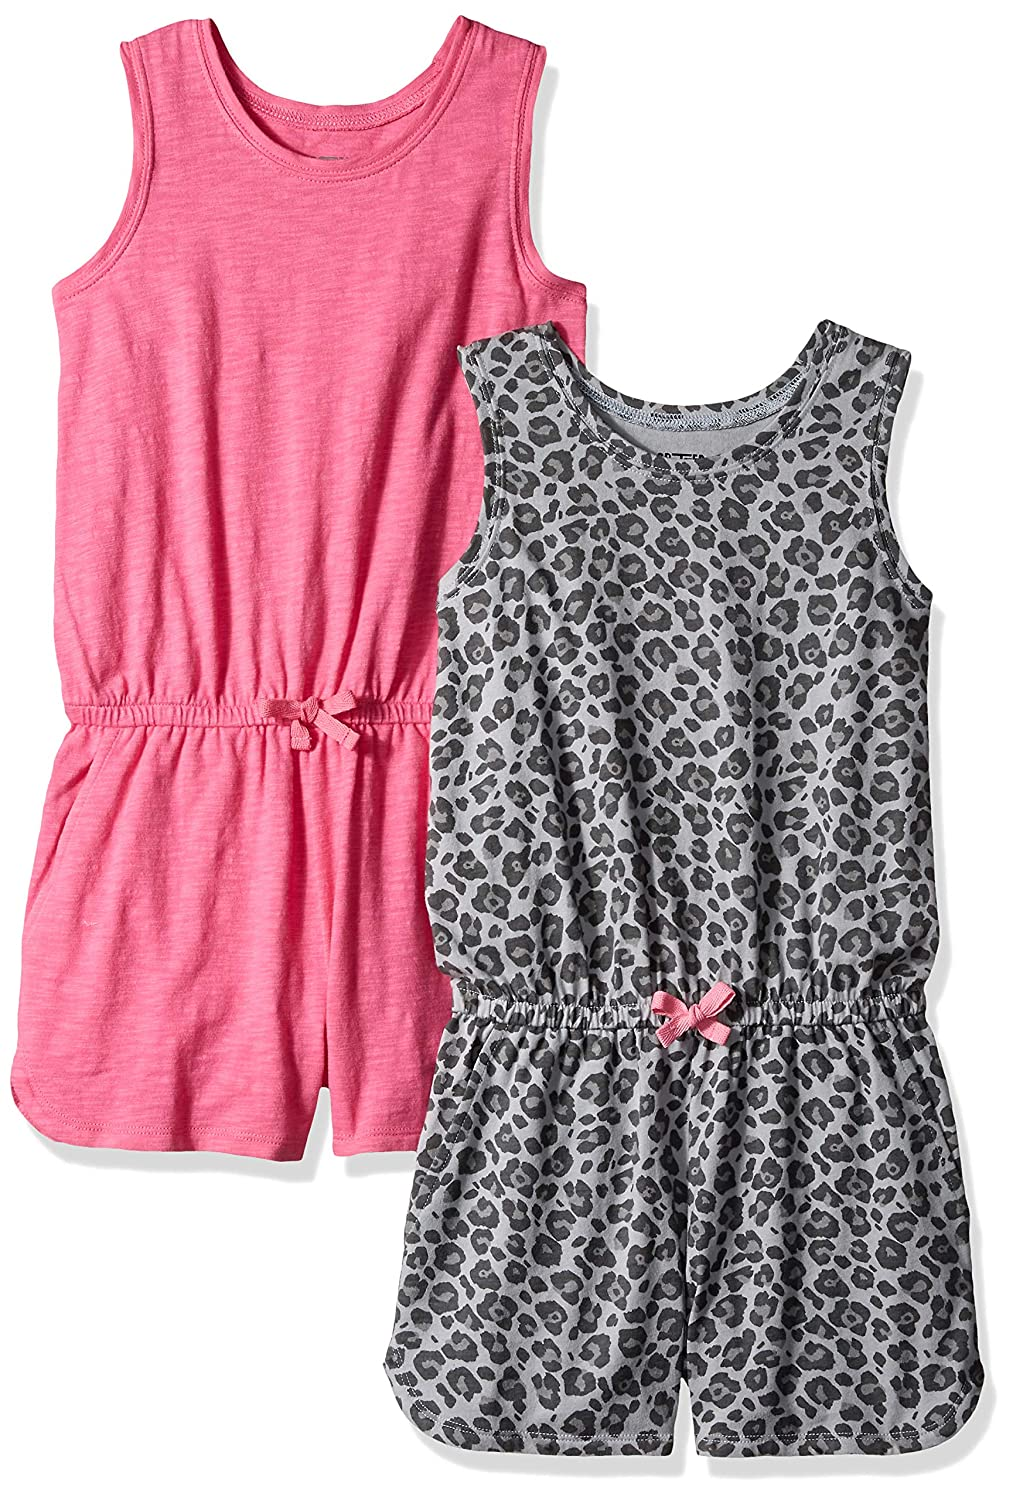 Marchio Spotted Zebra 2-Pack Knit Sleeveless Tank Rompers Bambina